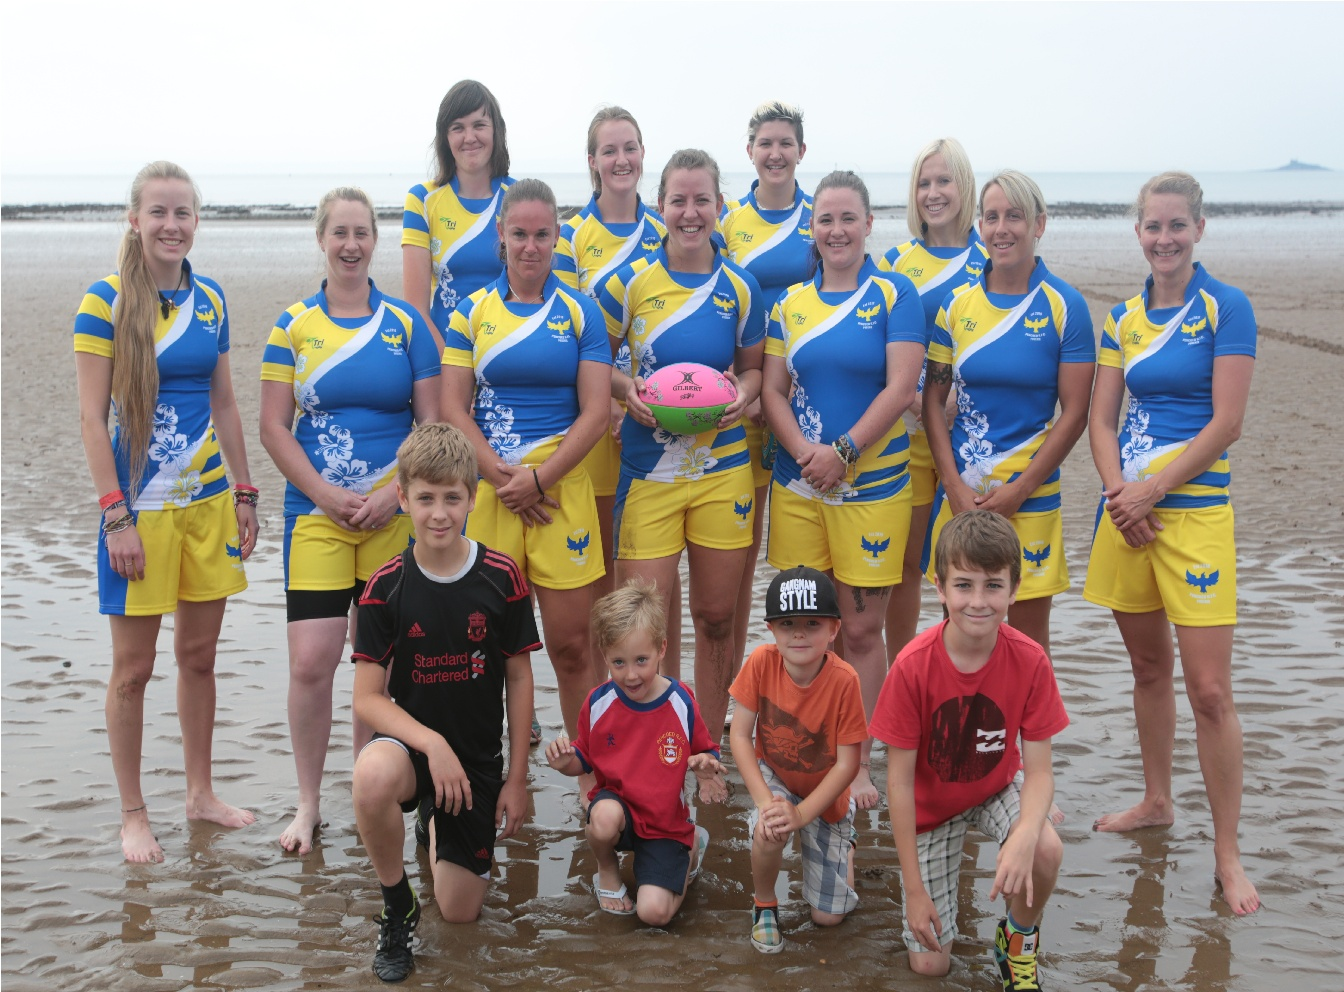 26.07.14 Beach Rugby Wales